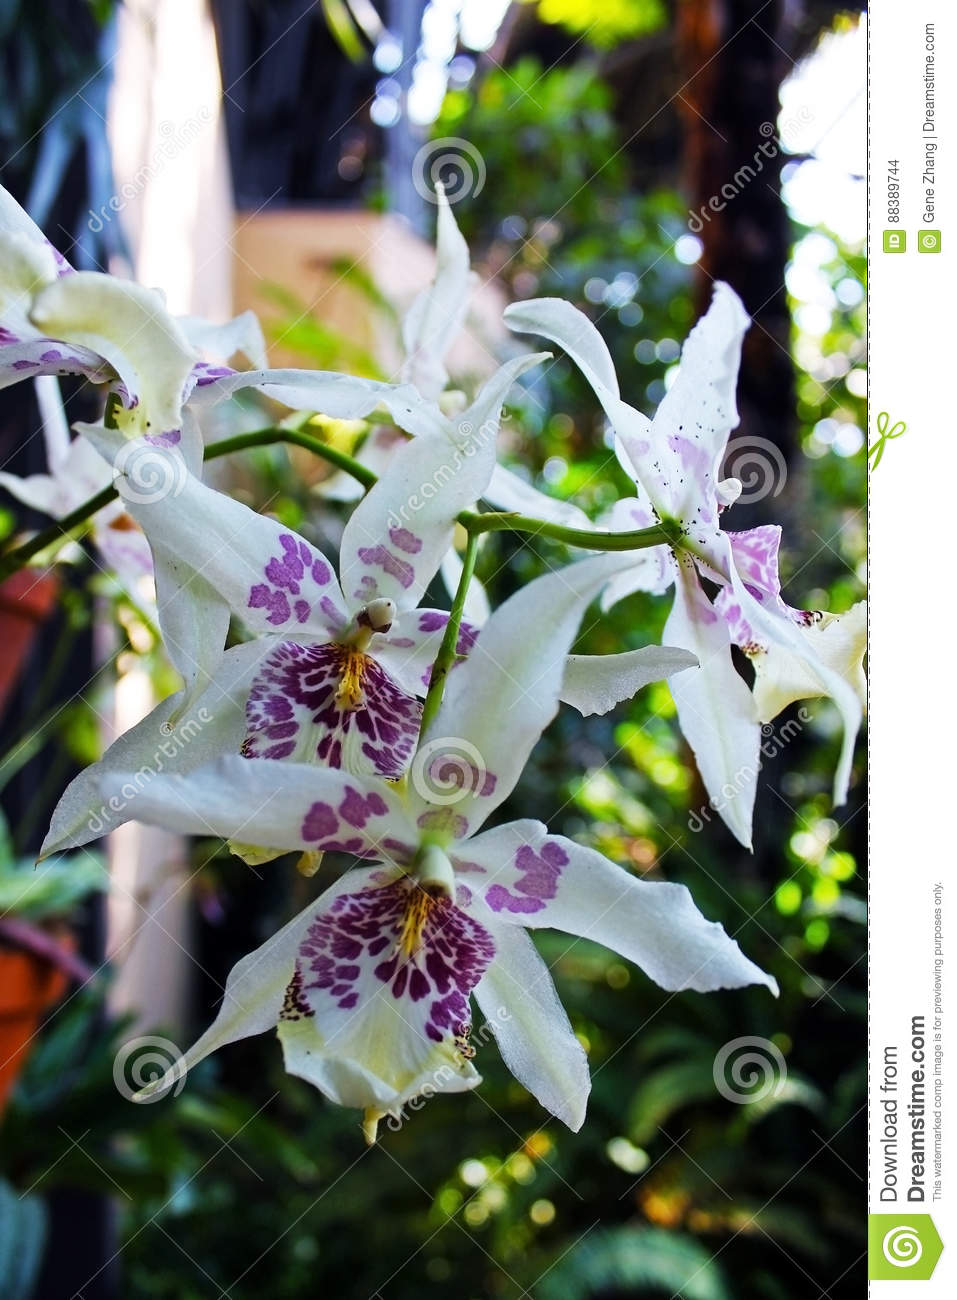 white spotted orchid flower - photo #16